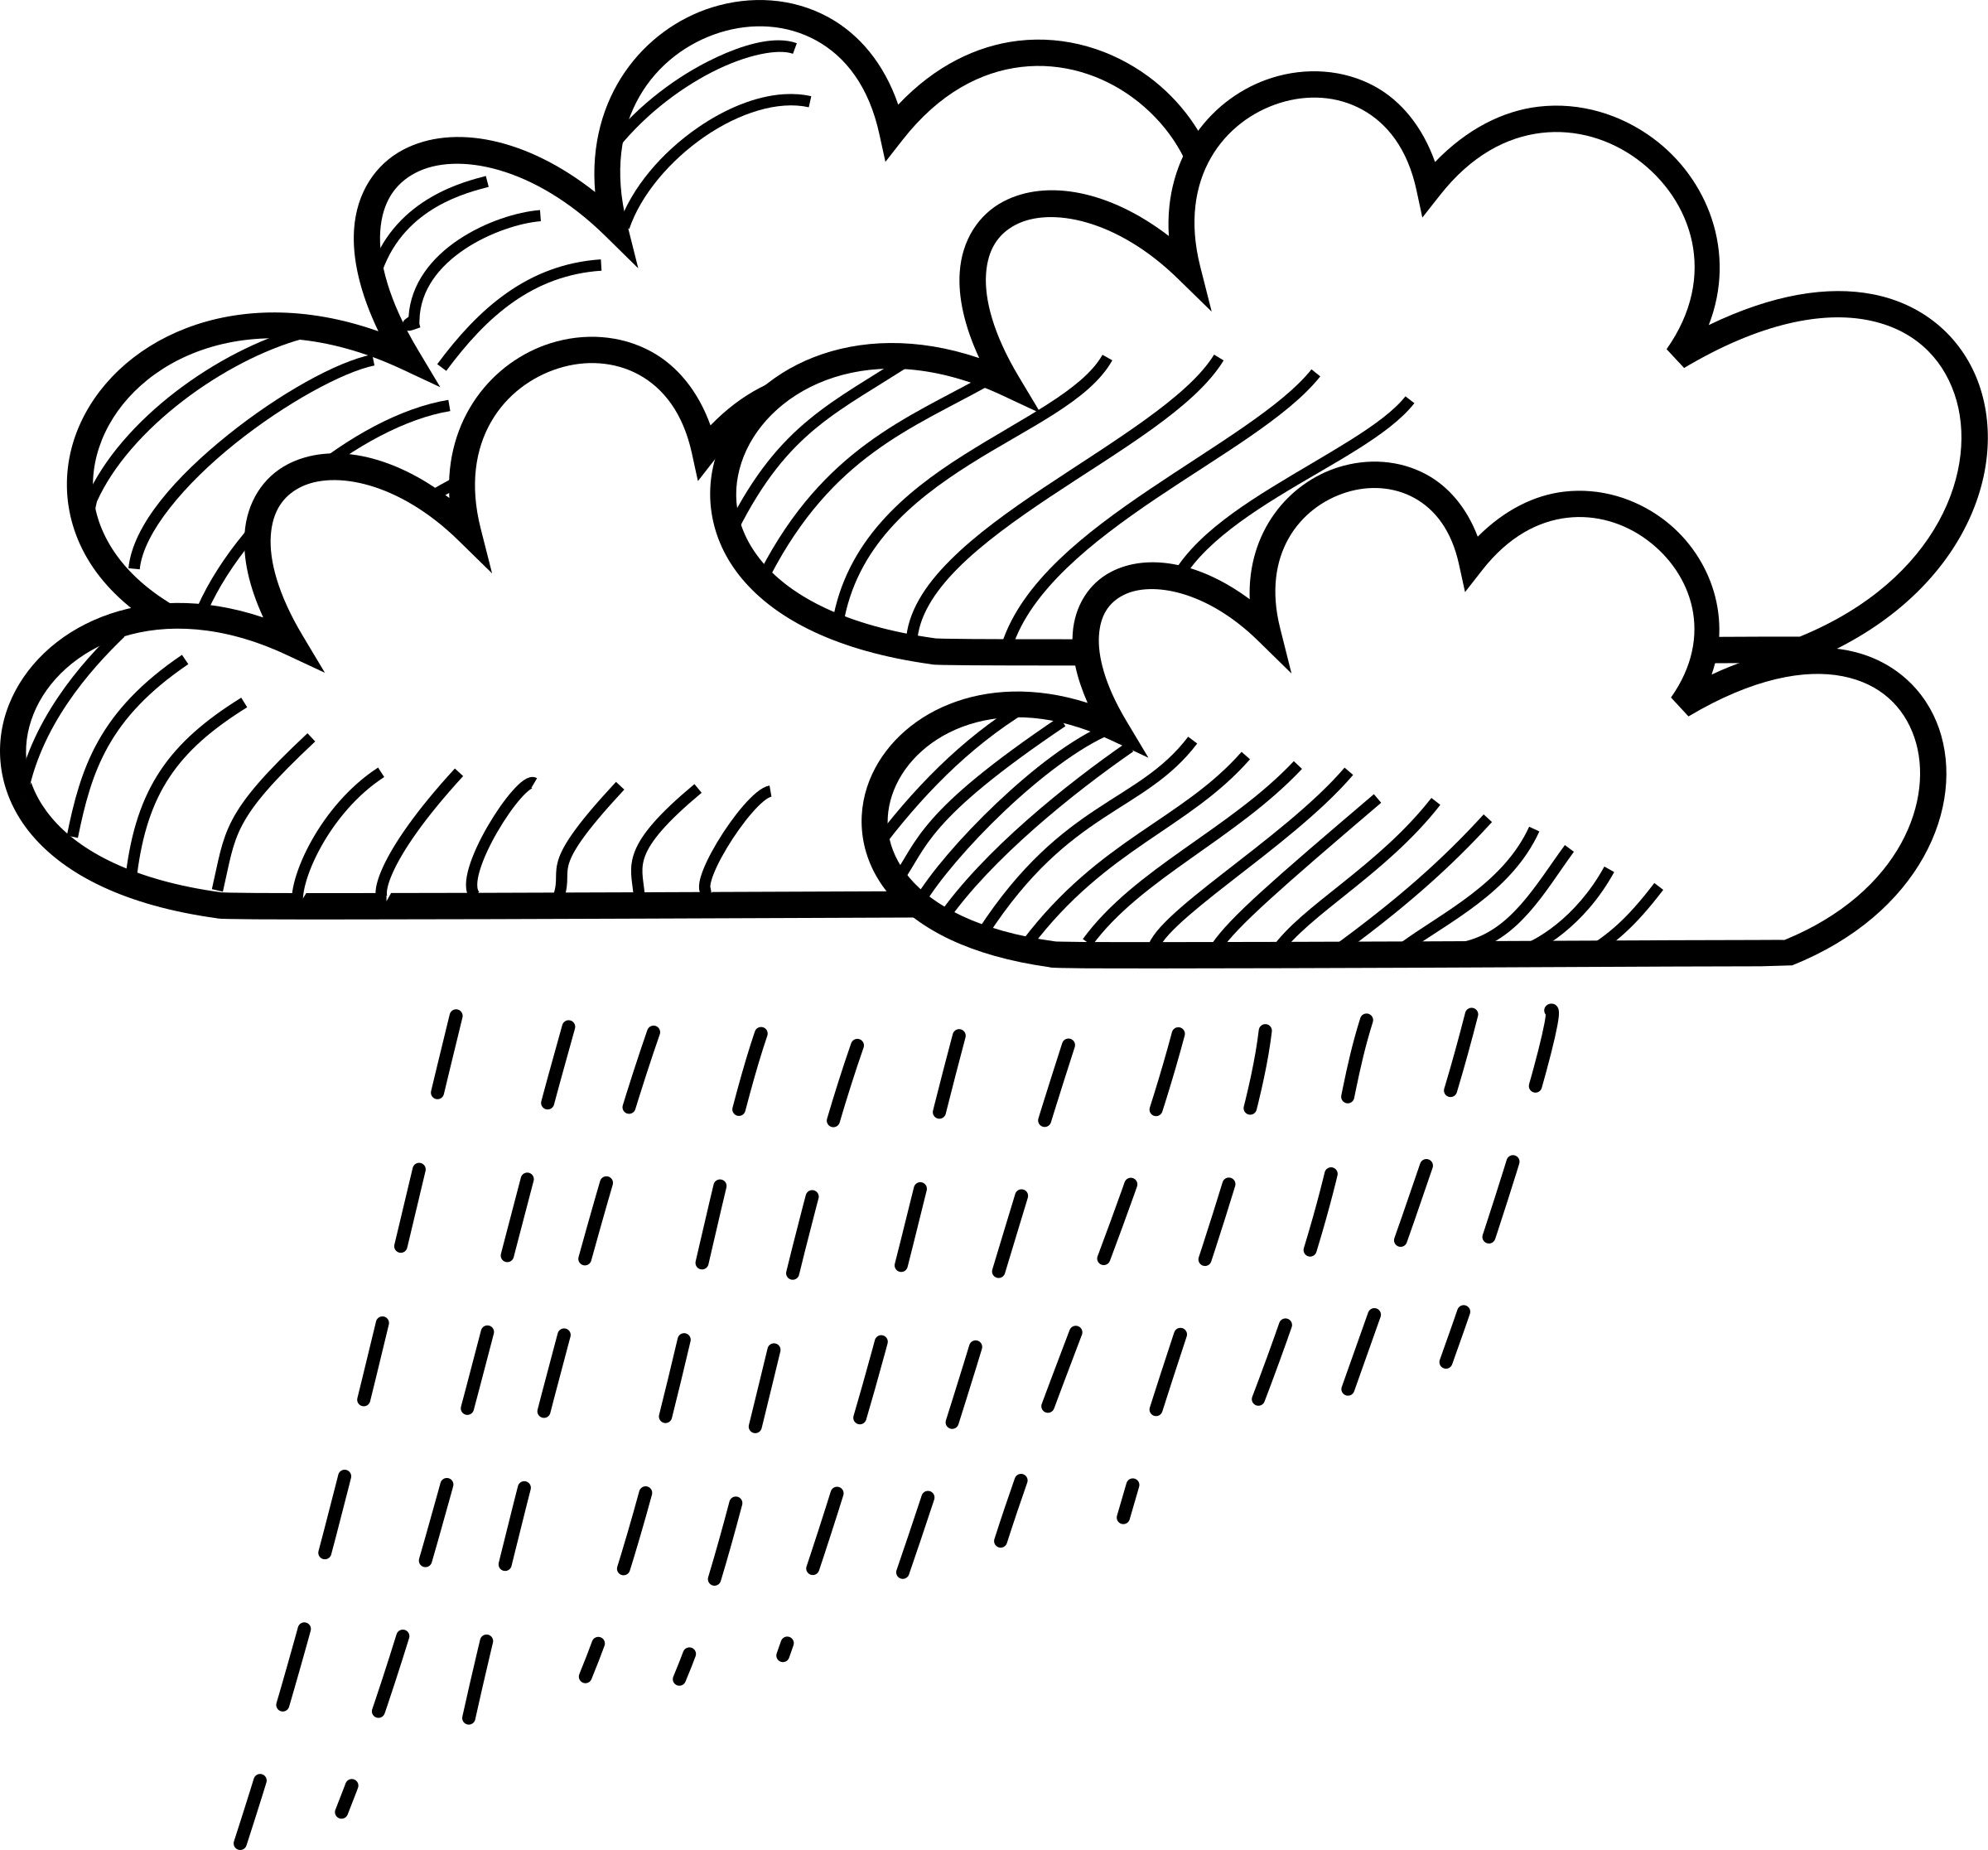 Stick figure cloud cluster. Wednesday clipart rainy